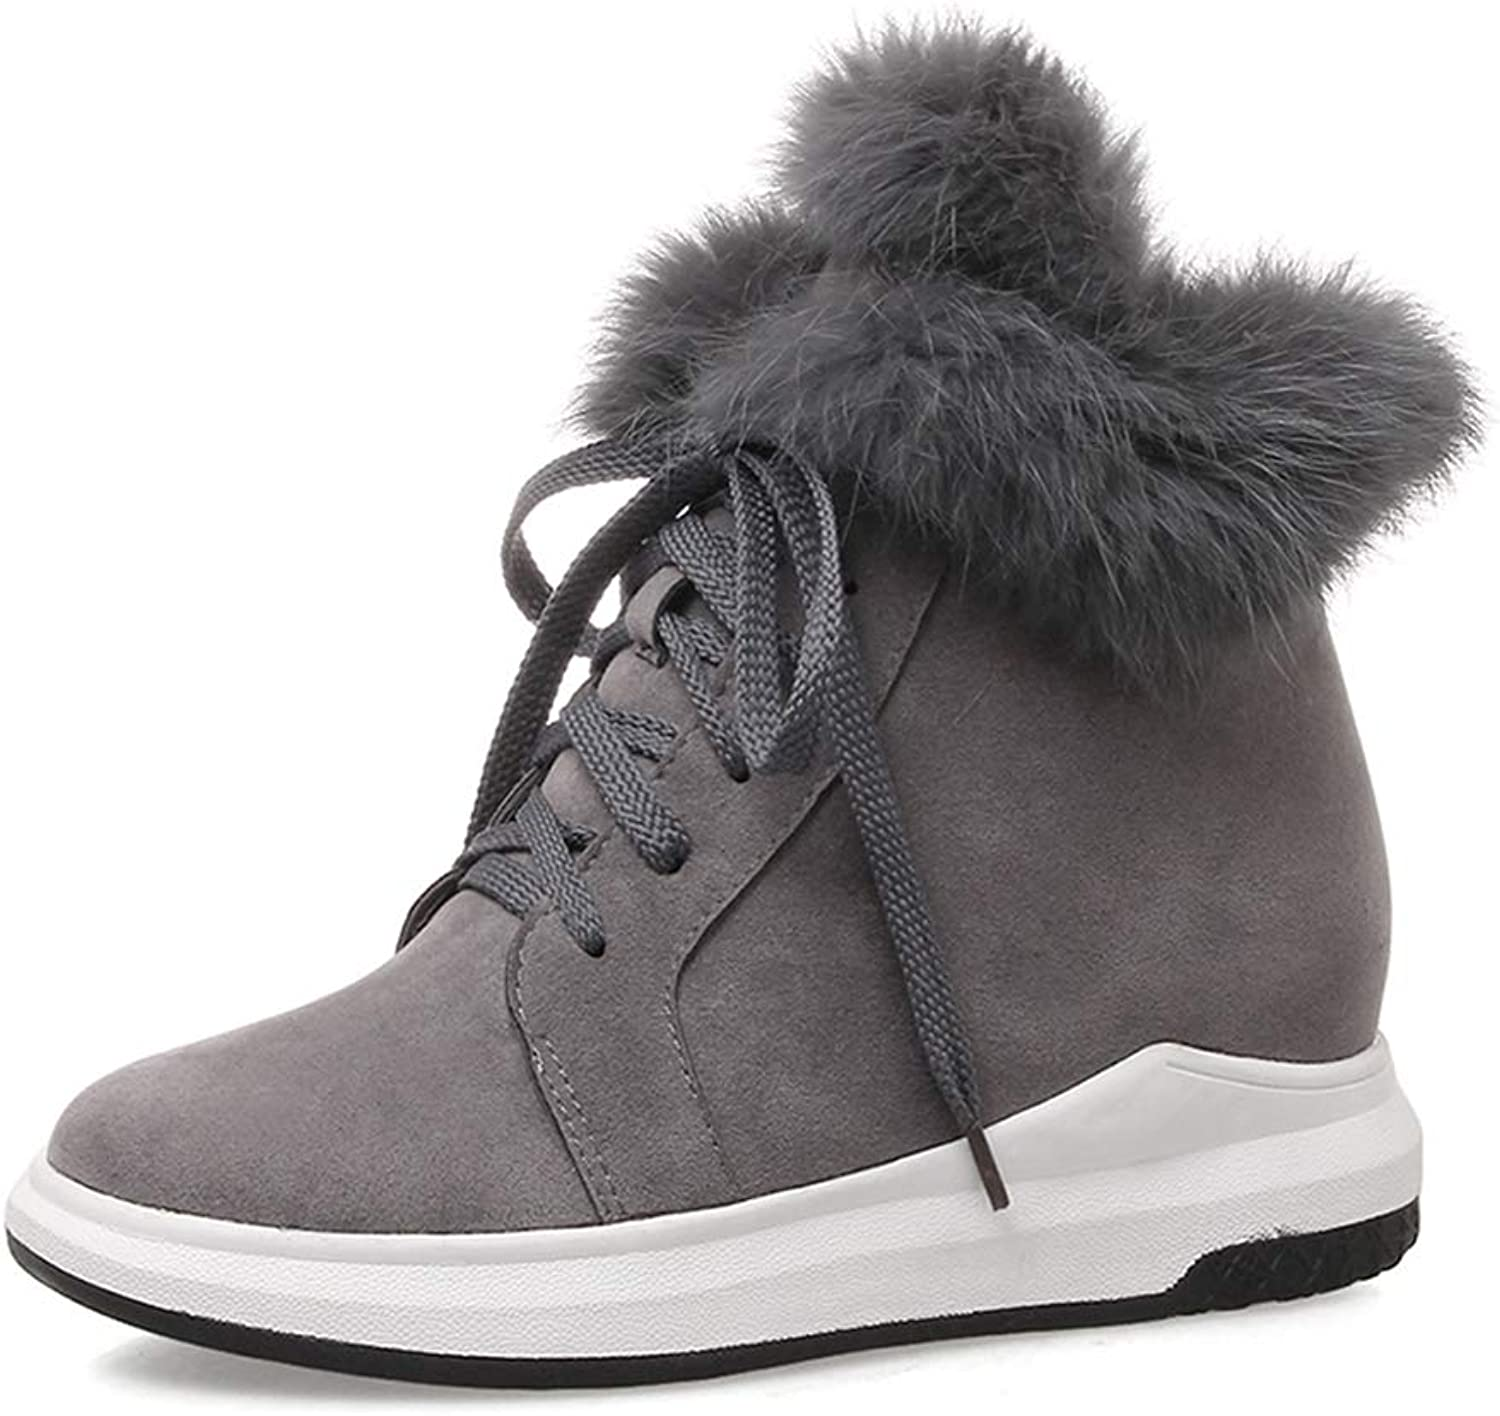 Hoxekle Height Increasing Ladies Snow Boots Black Fur Winter Boots Women Comfortable Warm shoes